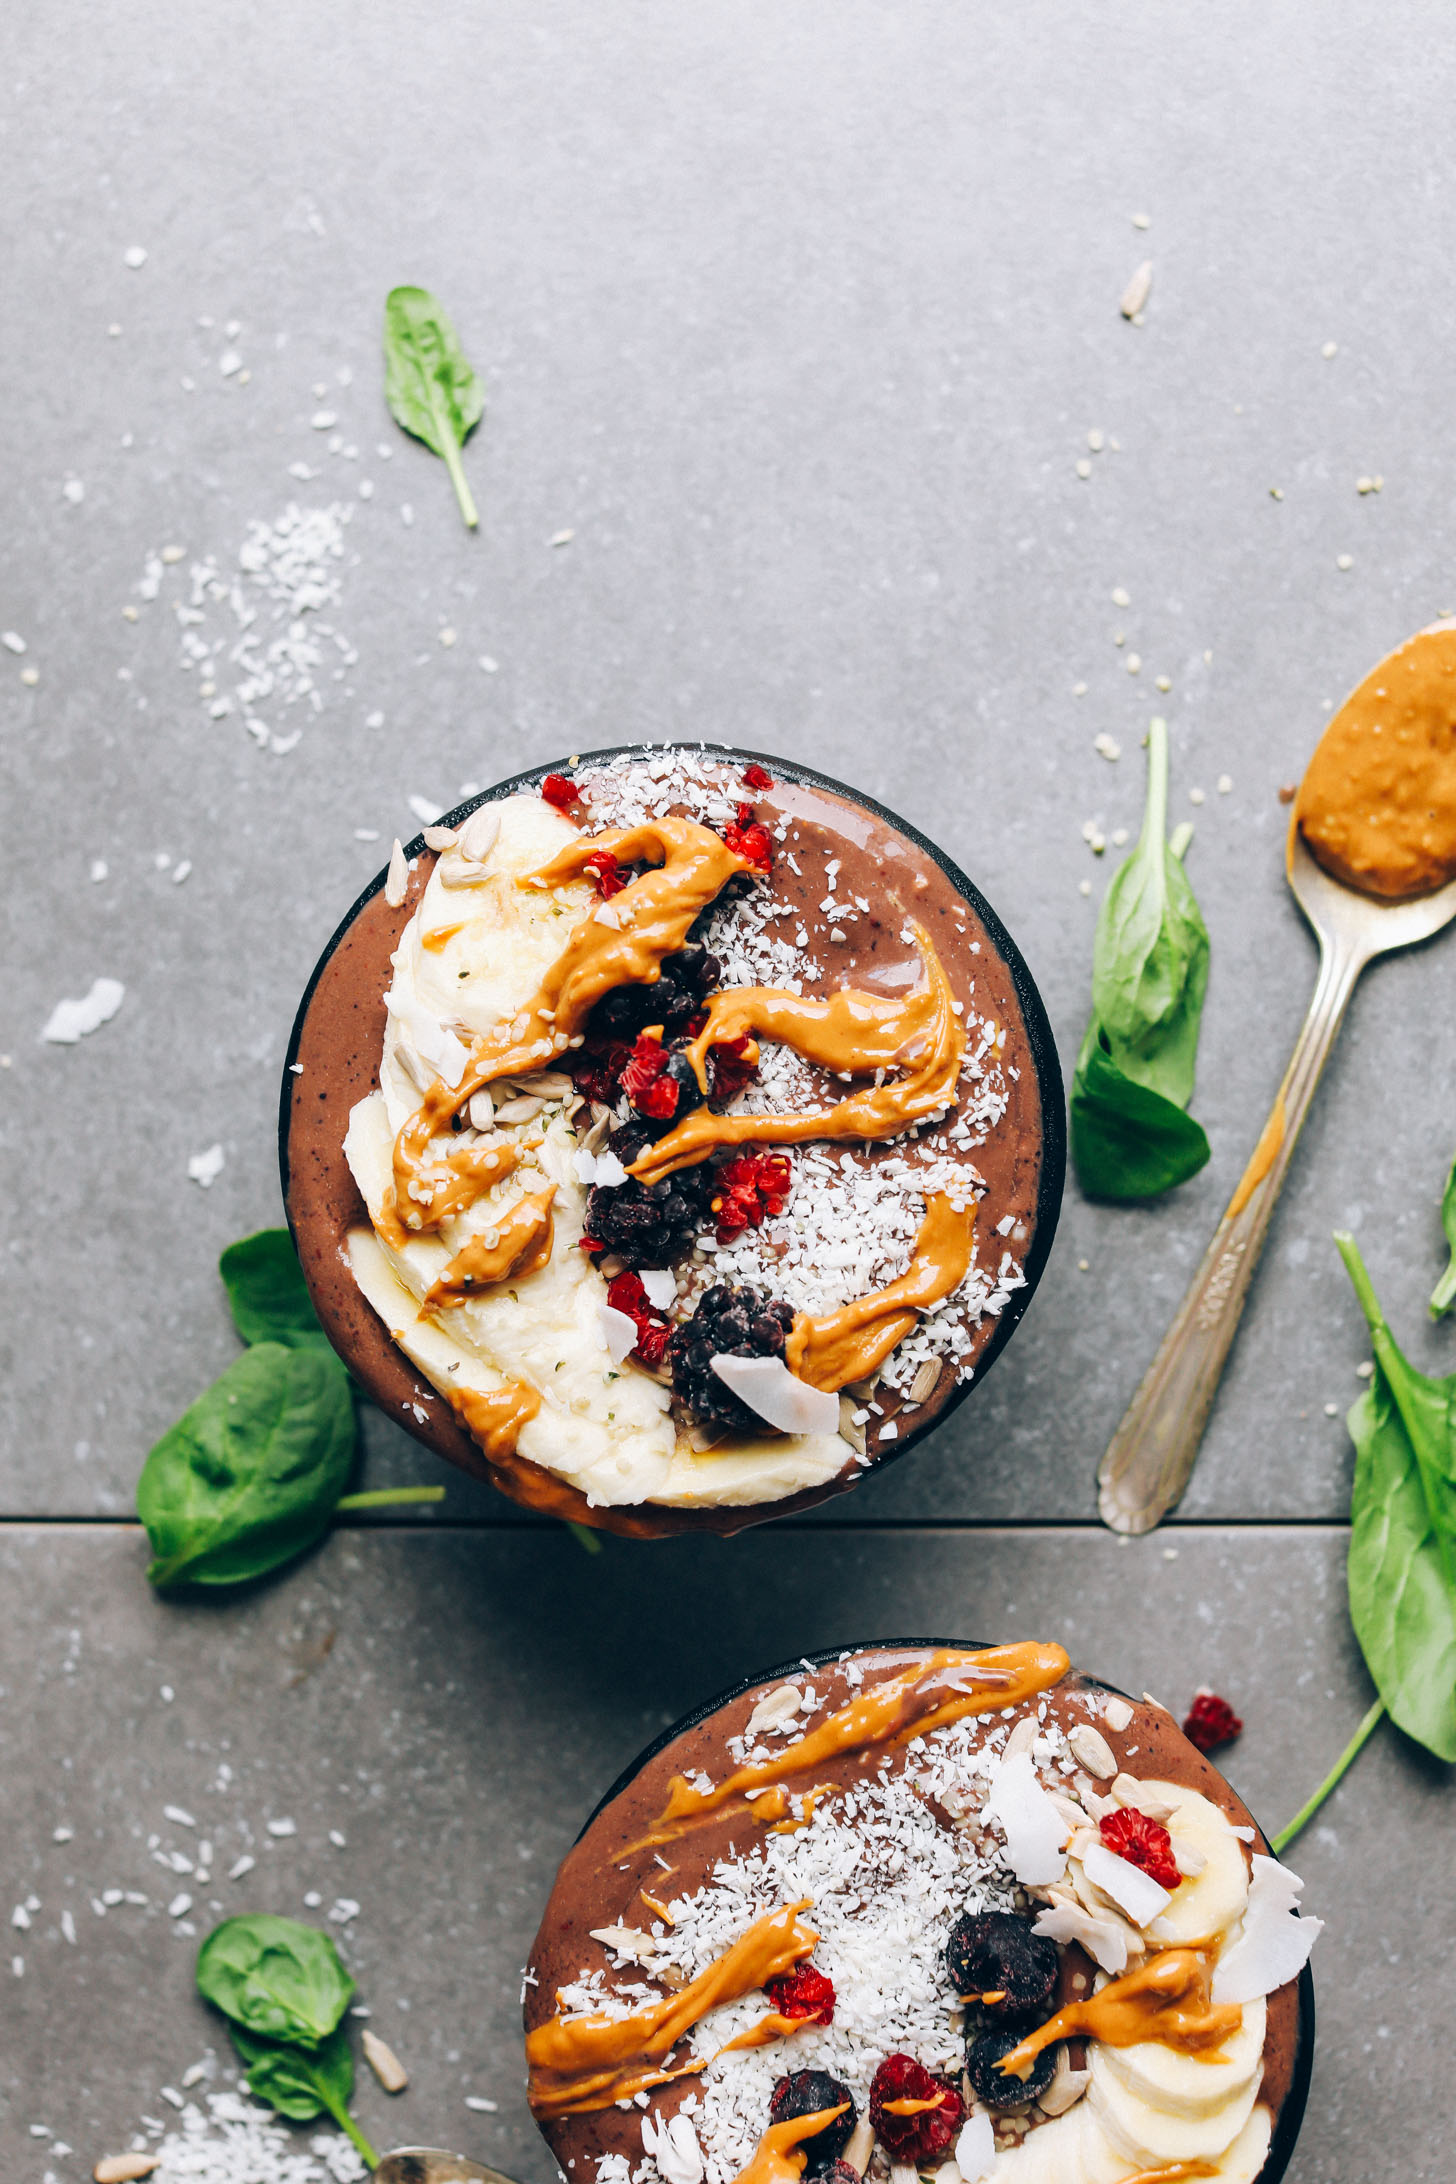 Peanut Butter and Jelly Acai Bowls topped with fresh fruits, peanut butter, and coconut